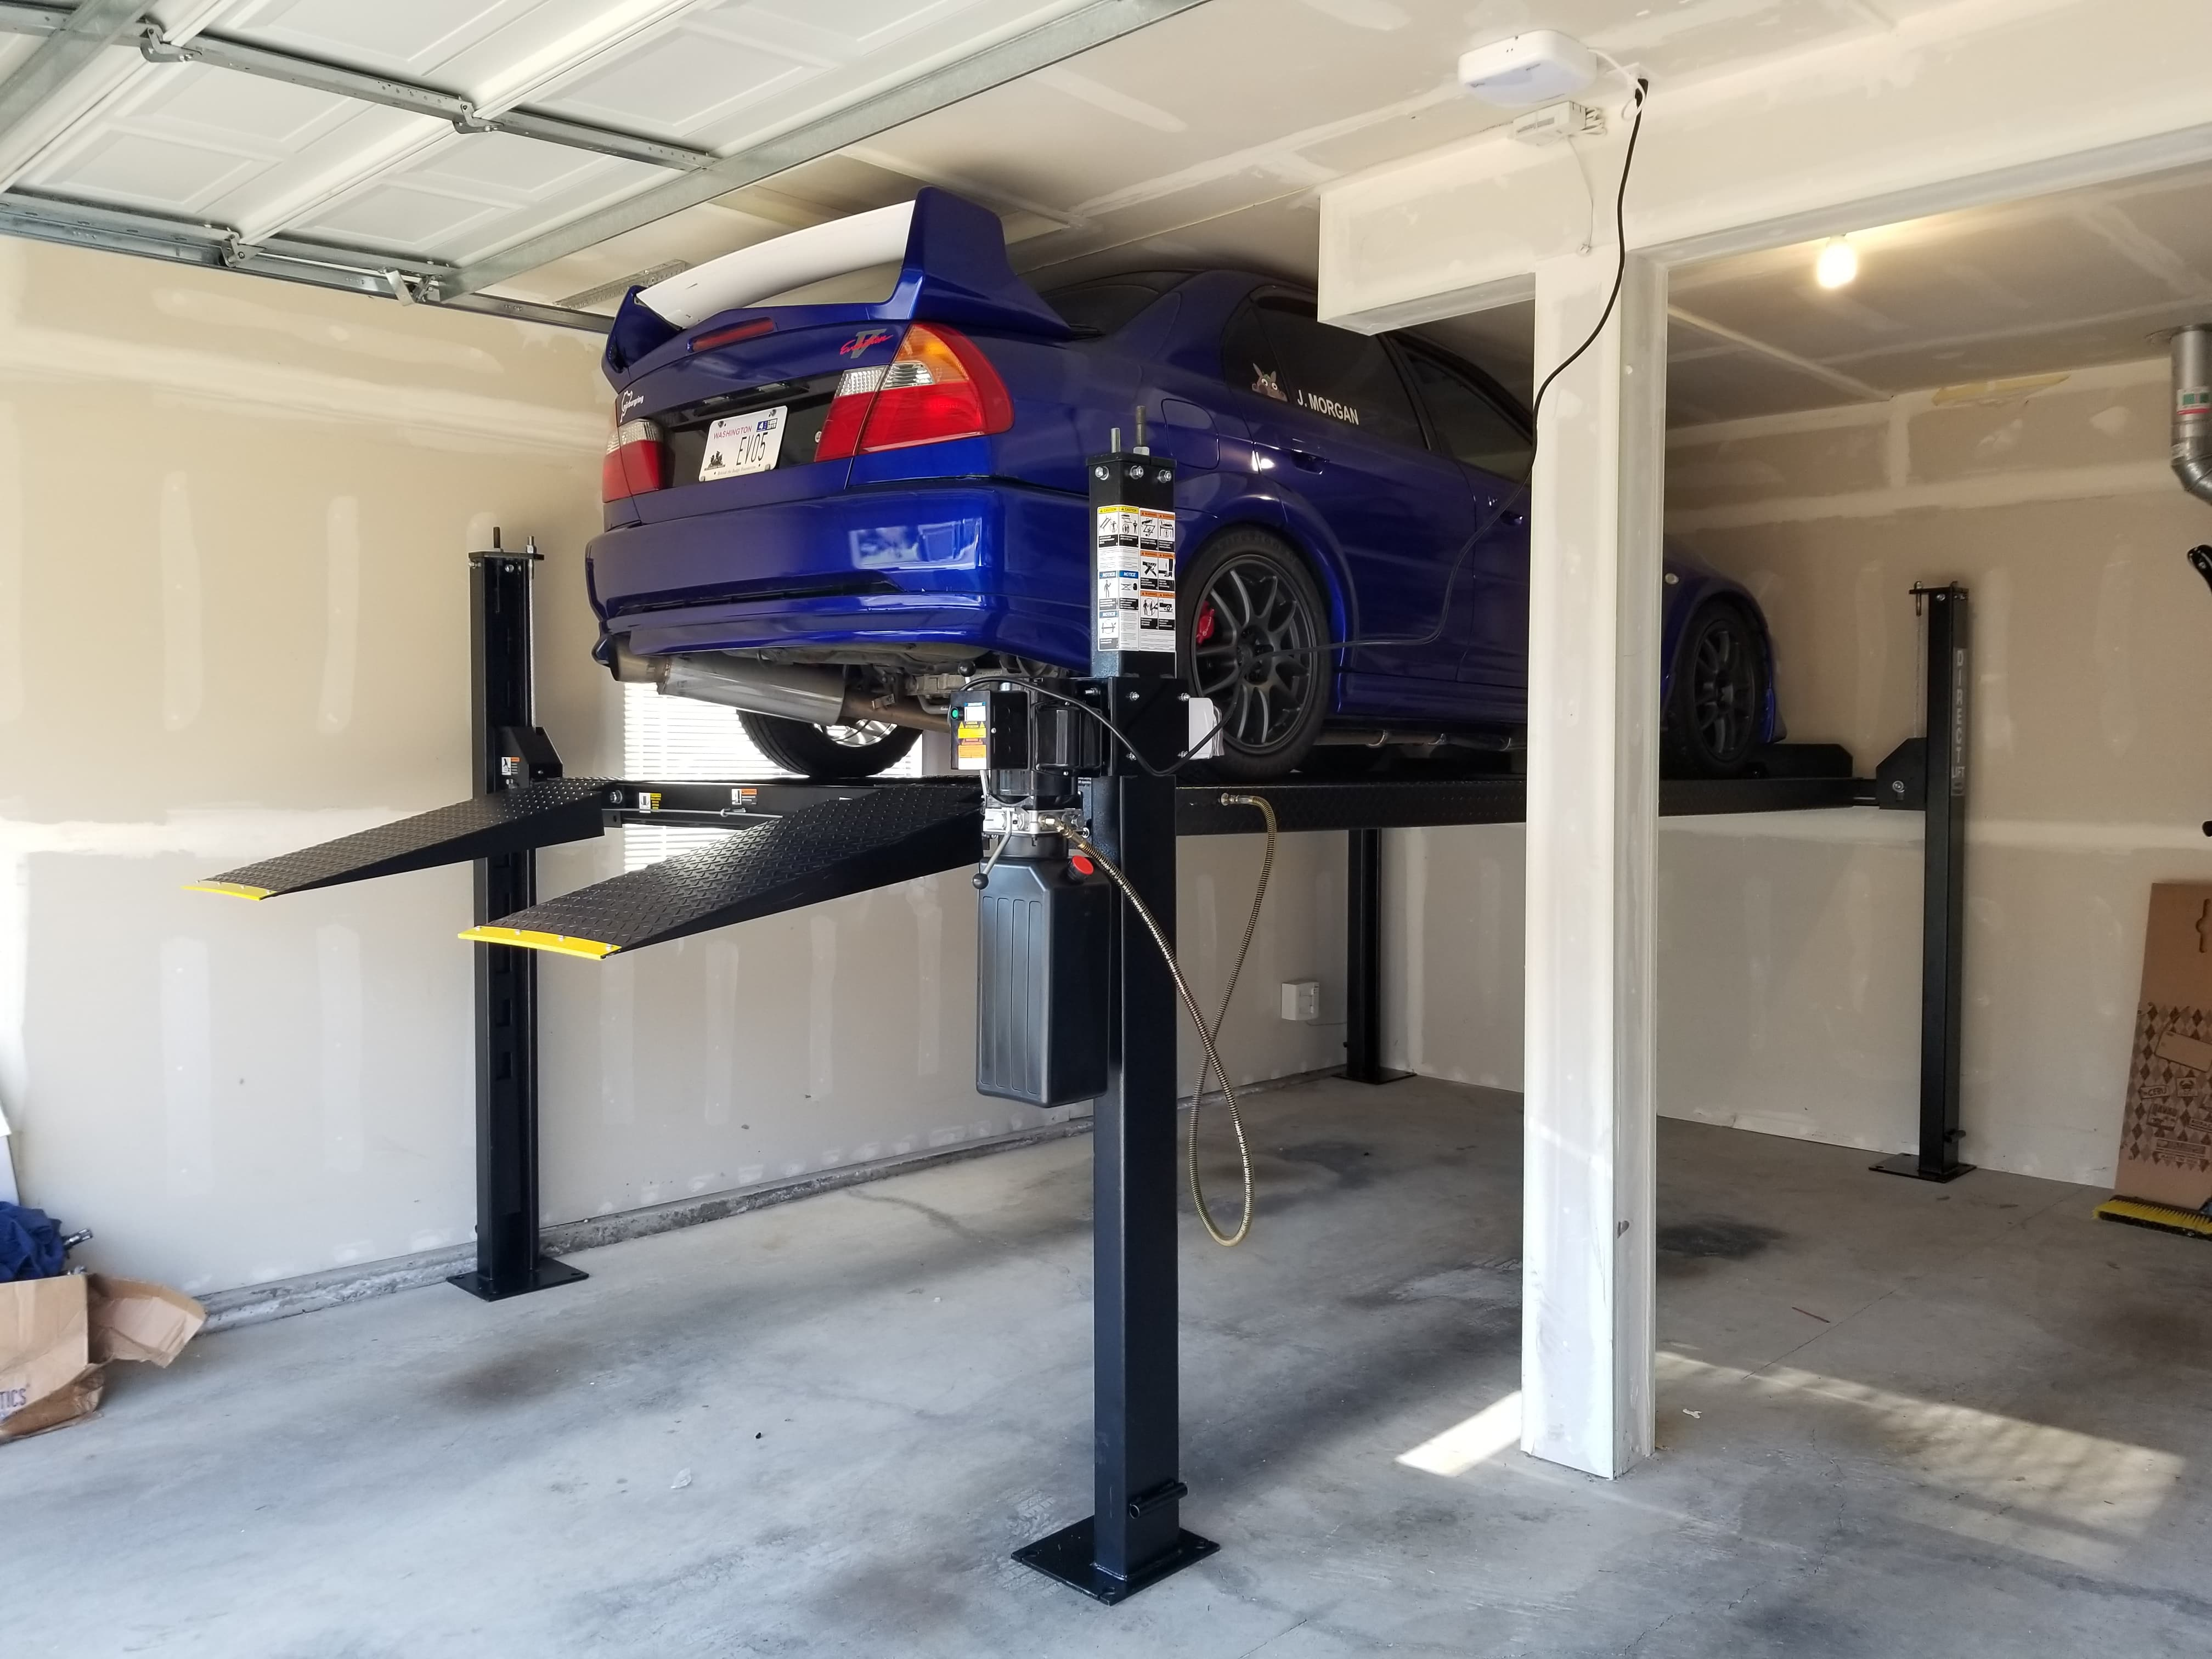 Car Lift In Garage I Put A Lift In My Garage Finally Jdm